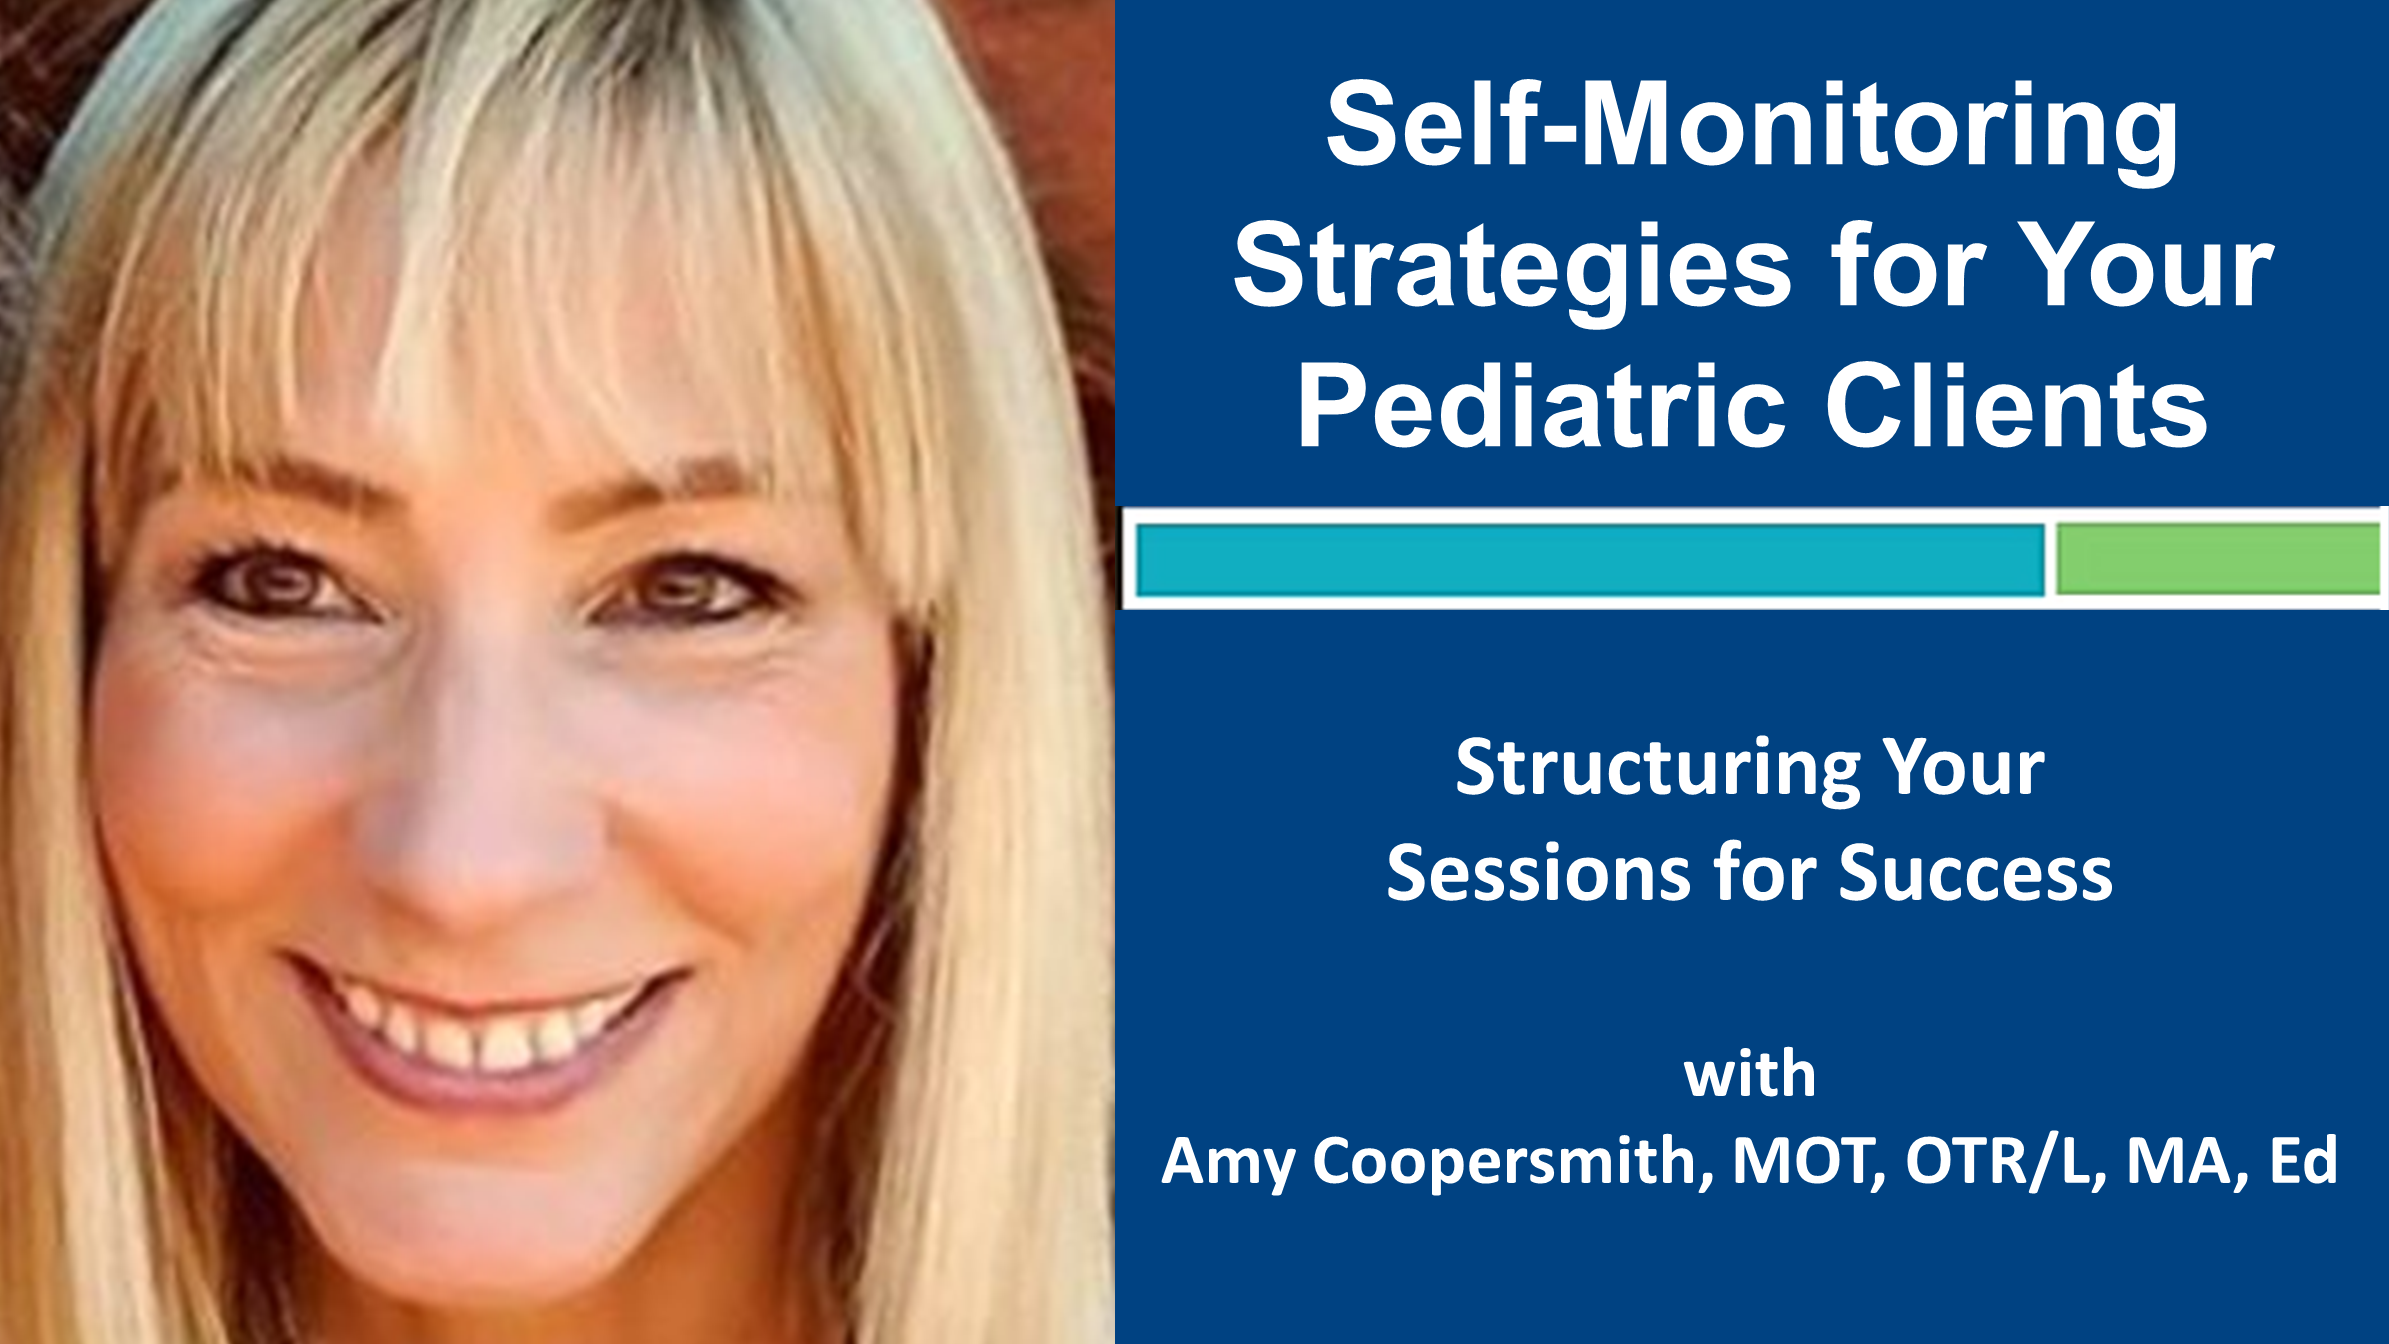 Webinar 6: Self-Monitoring Strategies for Your Pediatric Clients